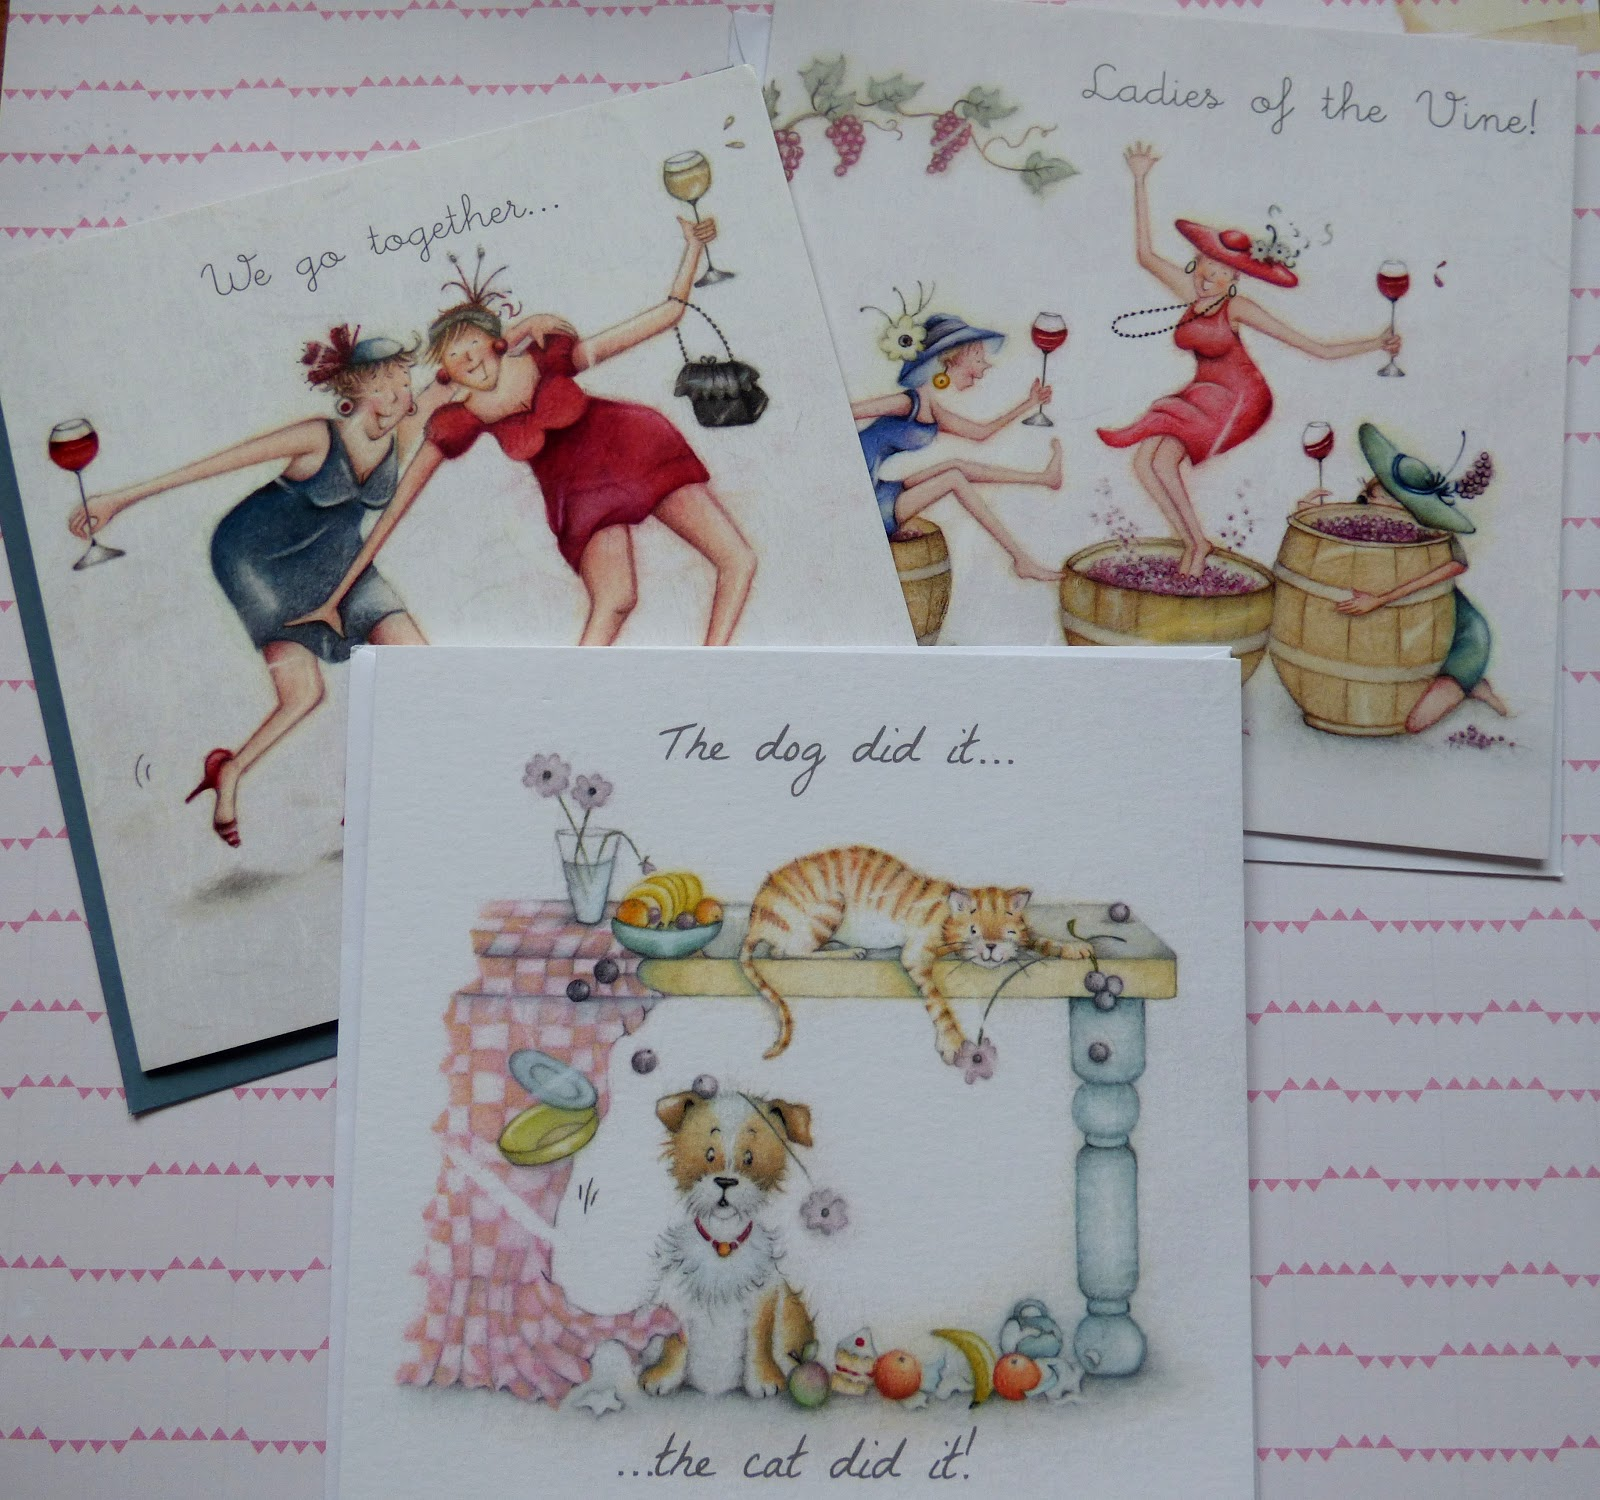 Greeting cards review from berni parker designs plus free birthday stationery review greetings cards berni parker designs kristyandbryce Gallery